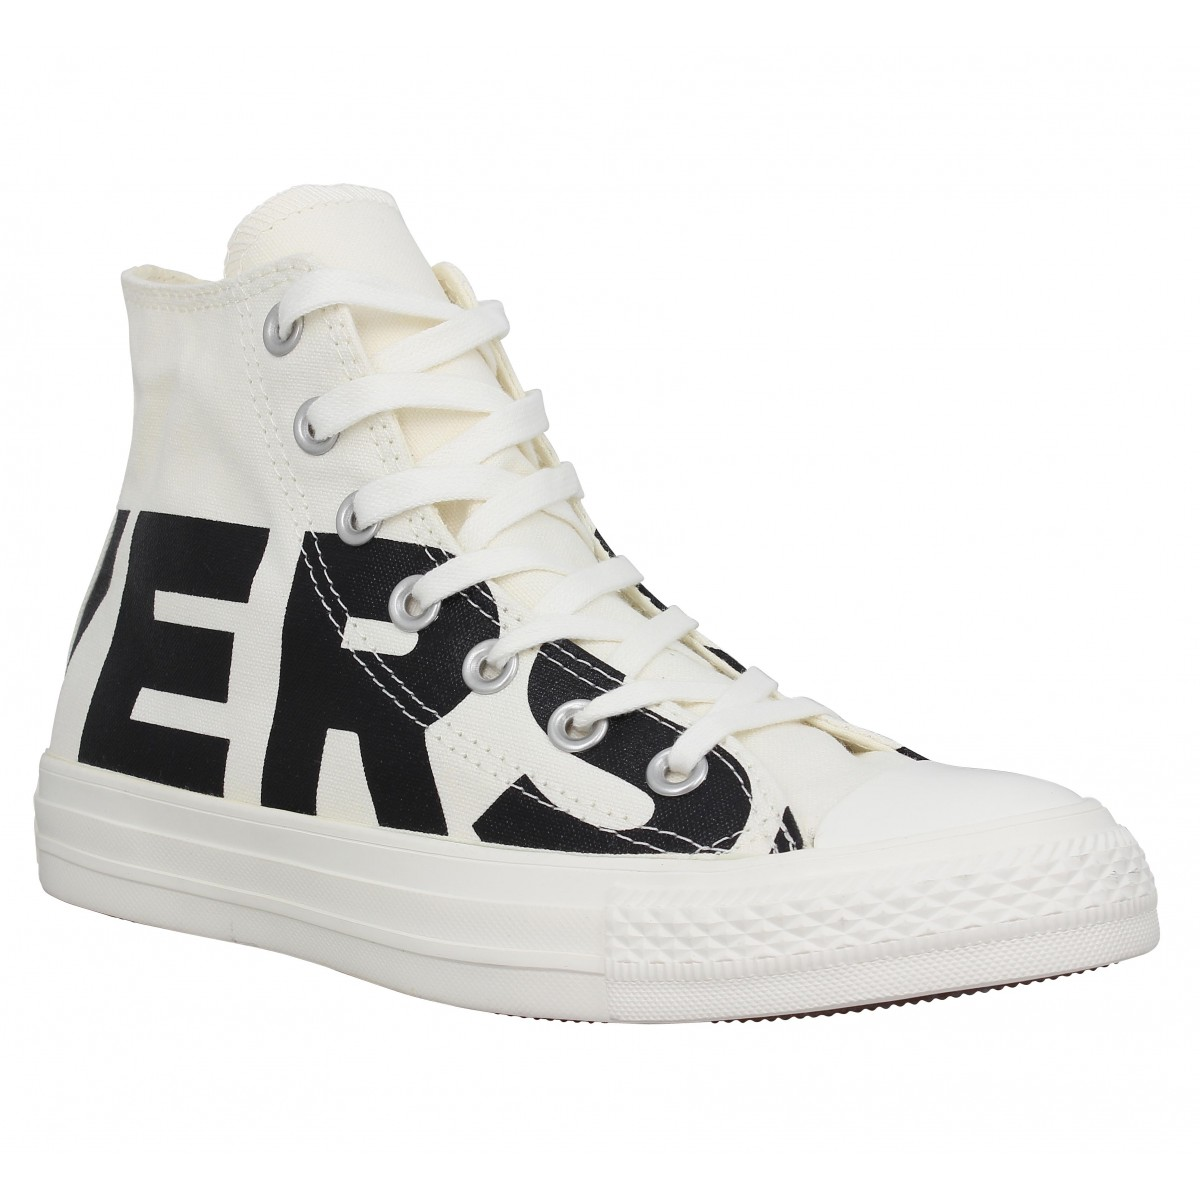 CONVERSE Chuck Taylor All Star Hi toile Femme Wordmark